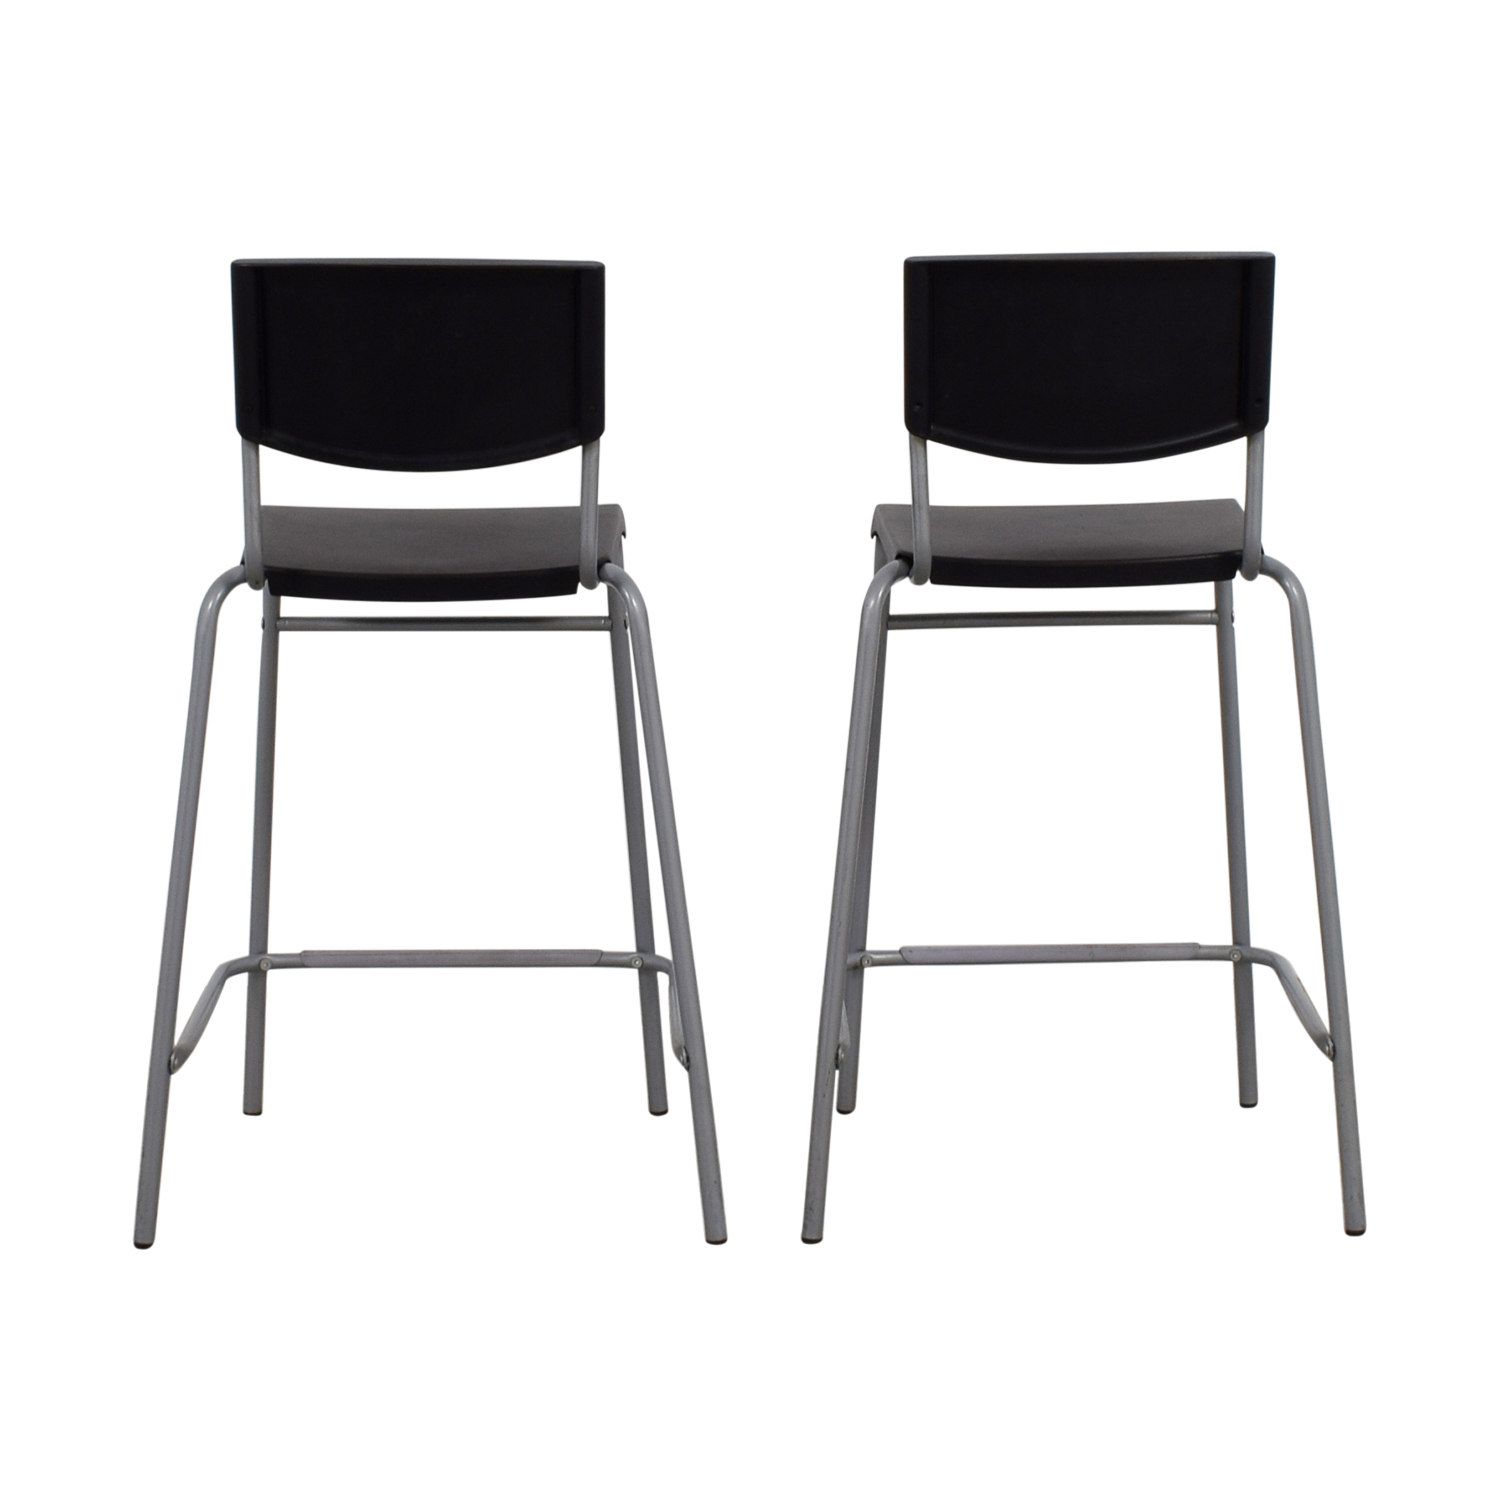 50% OFF - IKEA IKEA Stig Black Bar Stools / Chairs